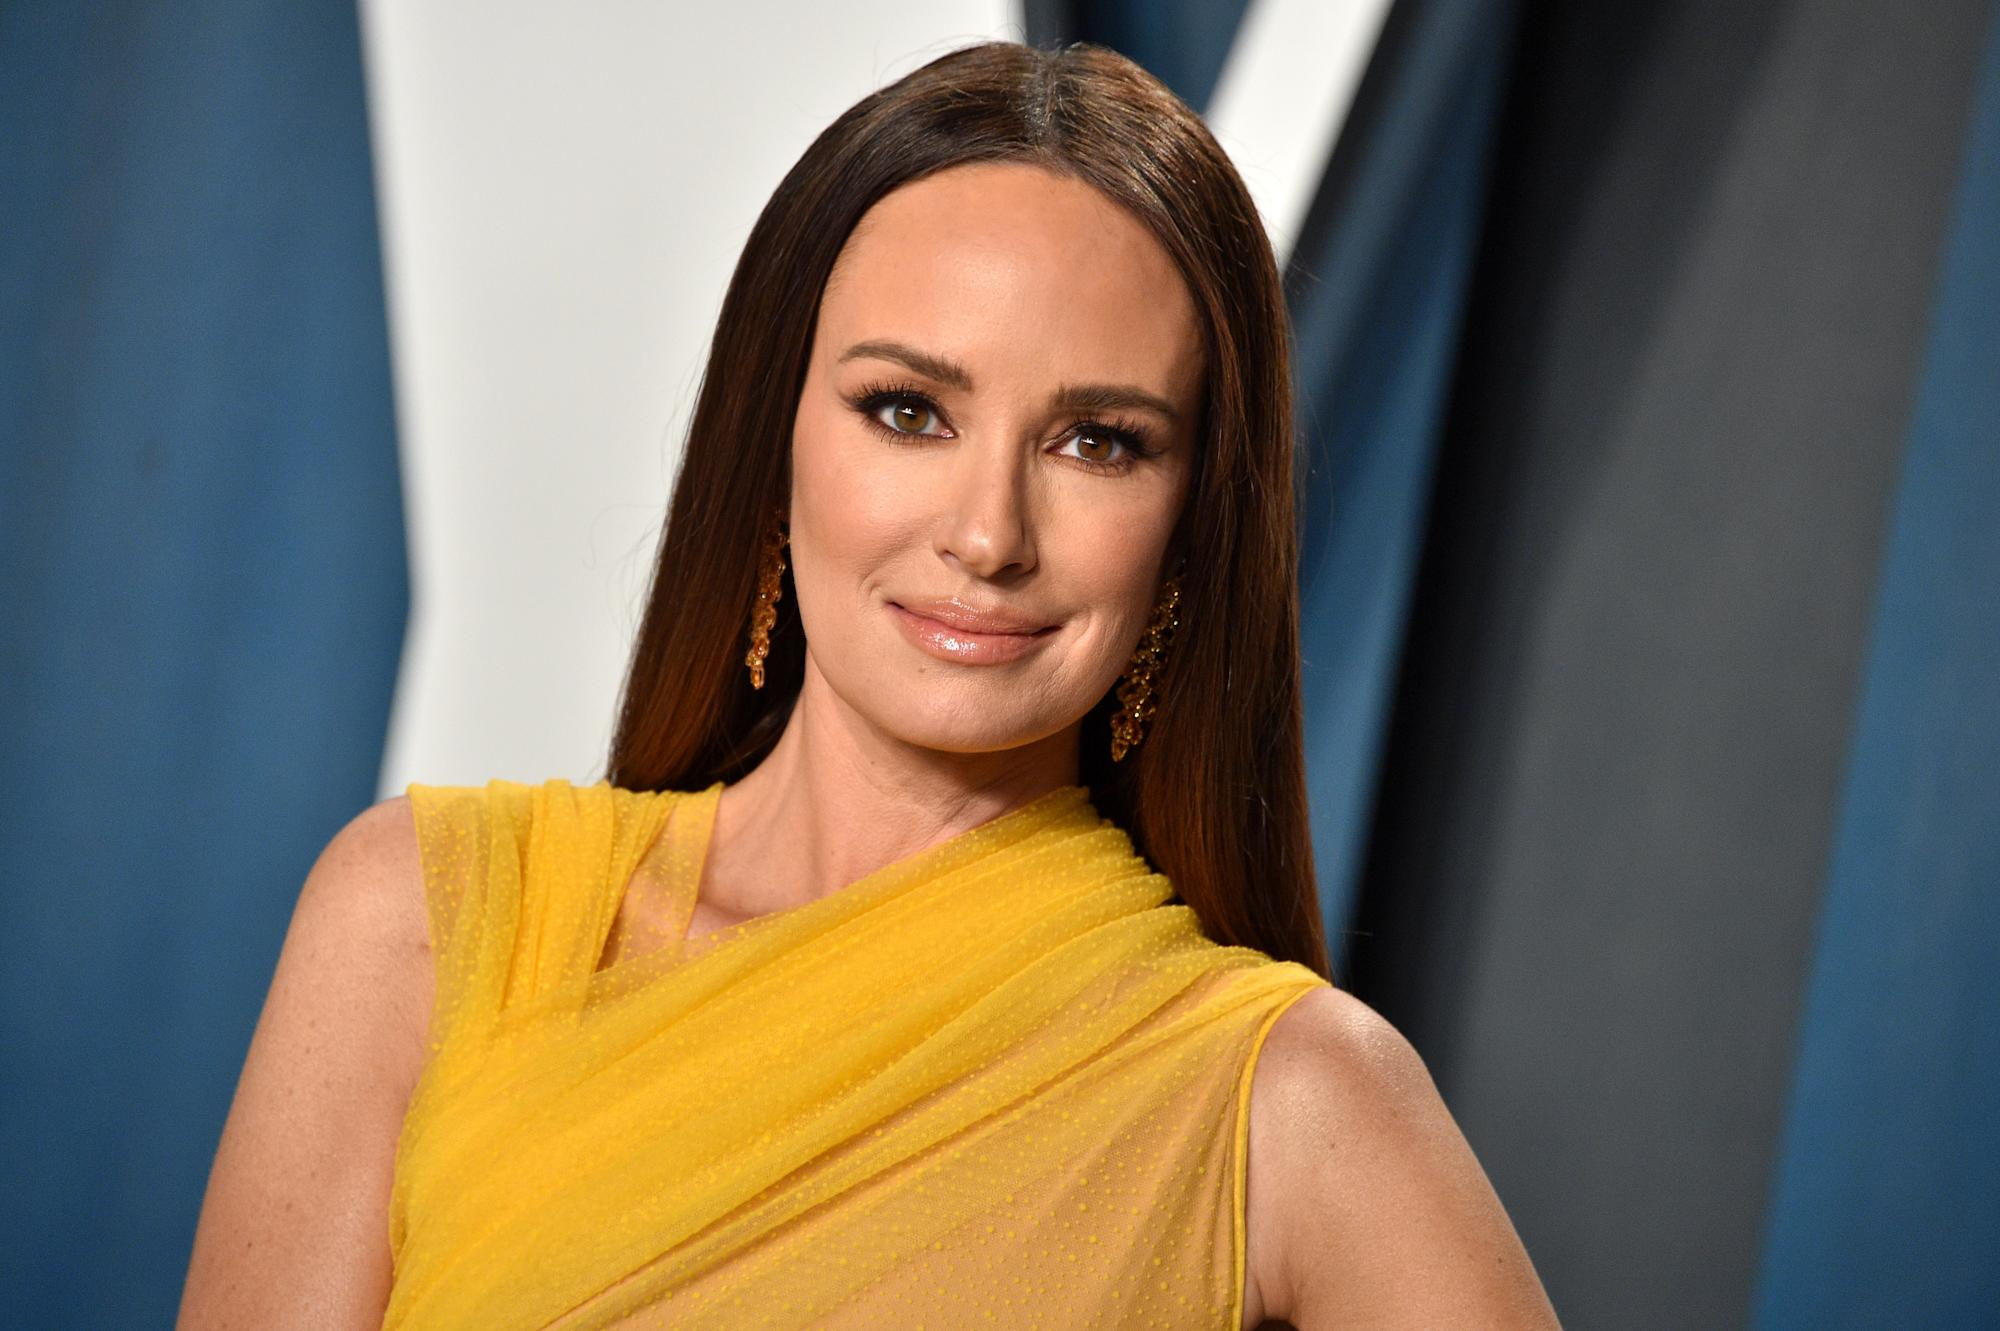 Catt Sadler says she has COVID after getting vaccinated. Experts explain 'rare' breakthrough infections - Yahoo Canada Shine On